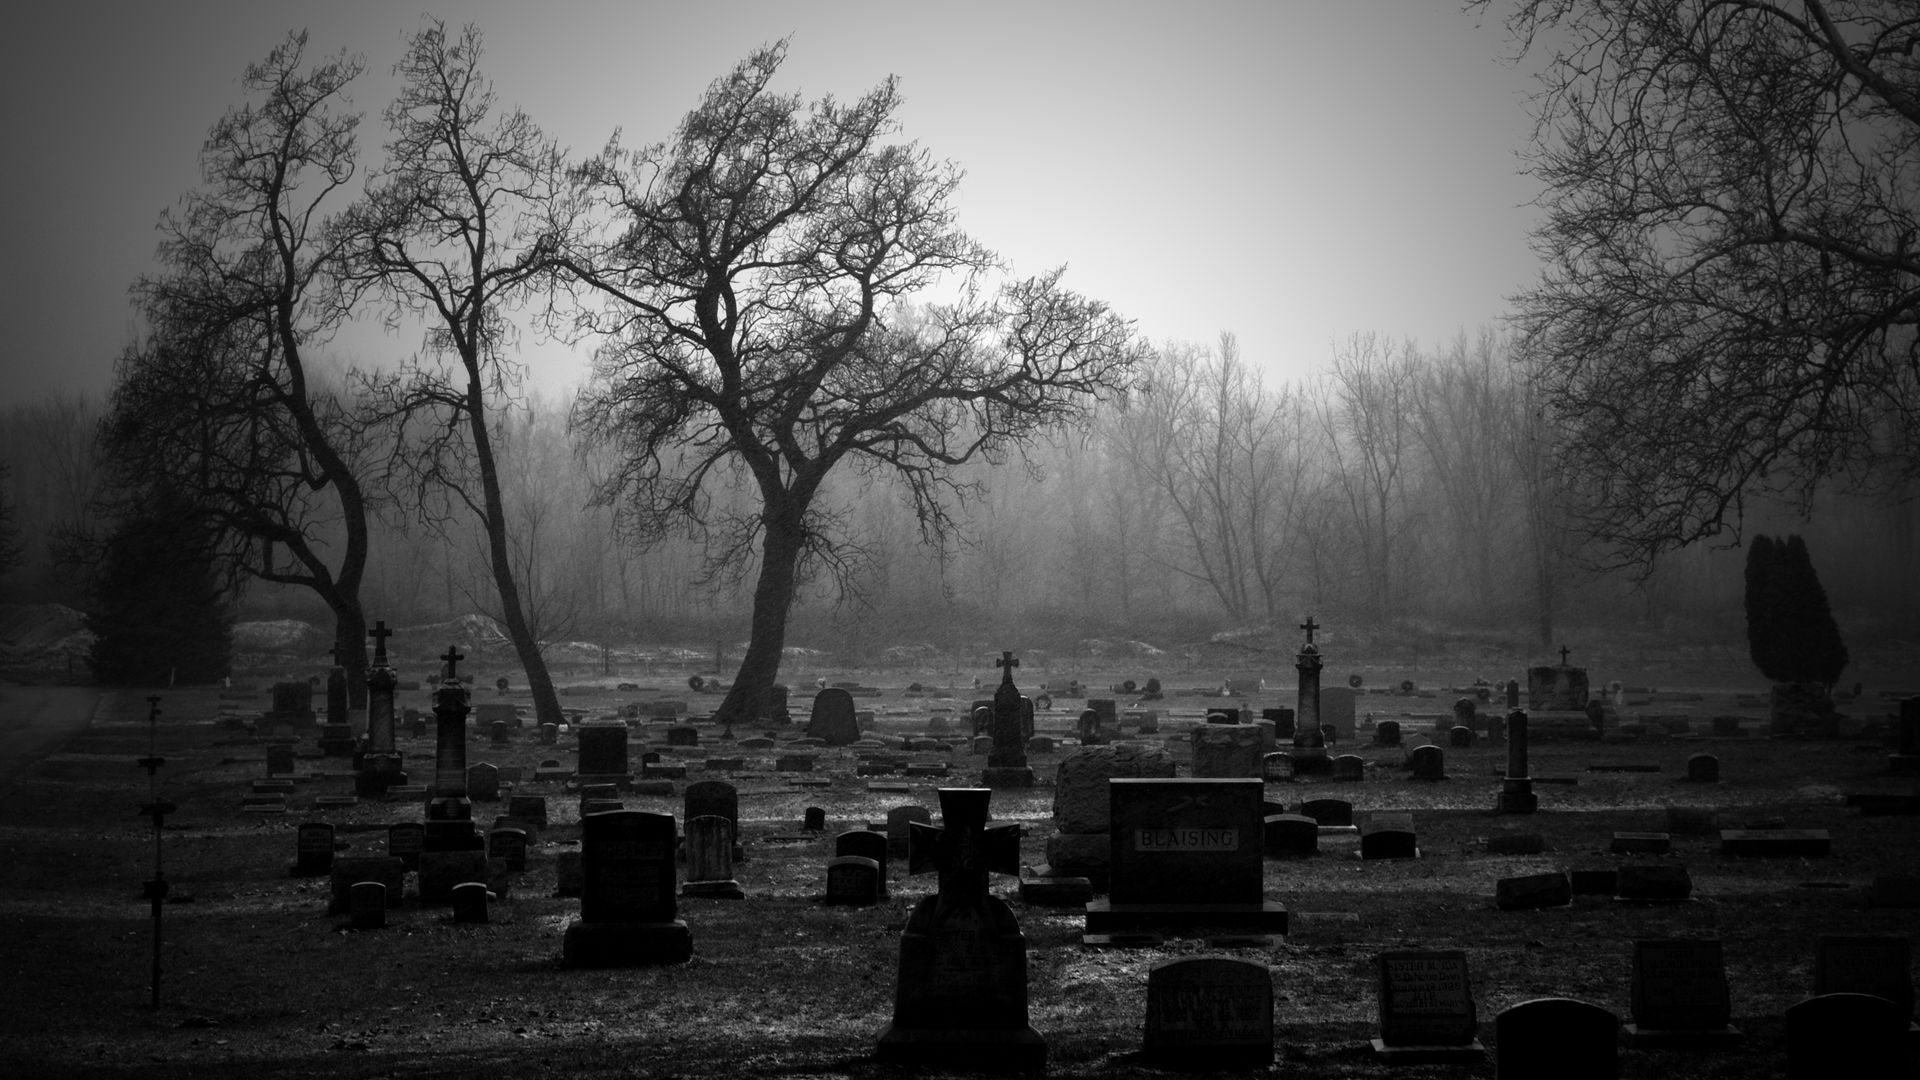 4k Ultra Graveyard Wallpapers, Graveyard HD Widescreen